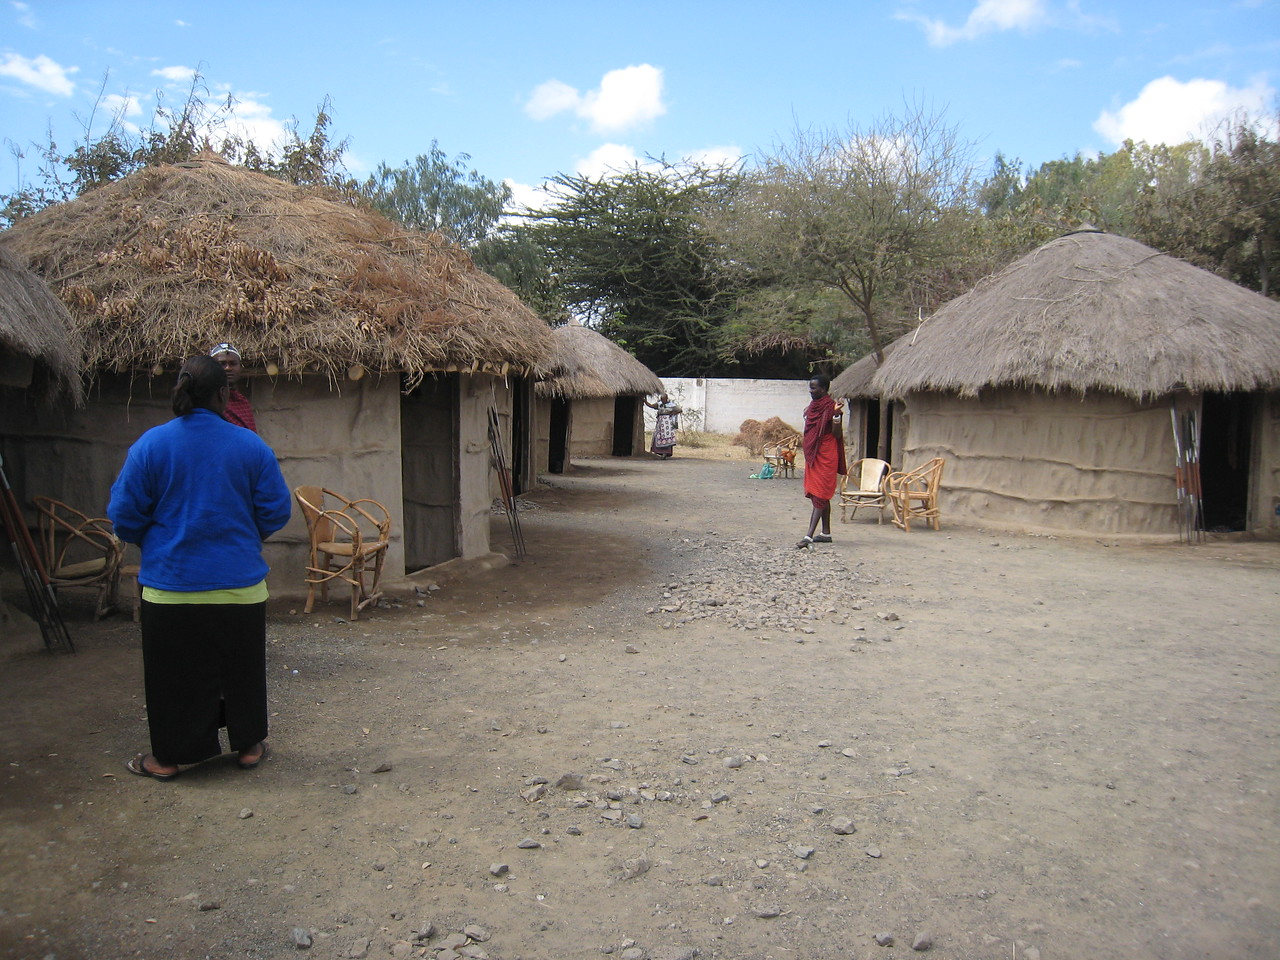 Maasai Village at Meserani in Tanzania.